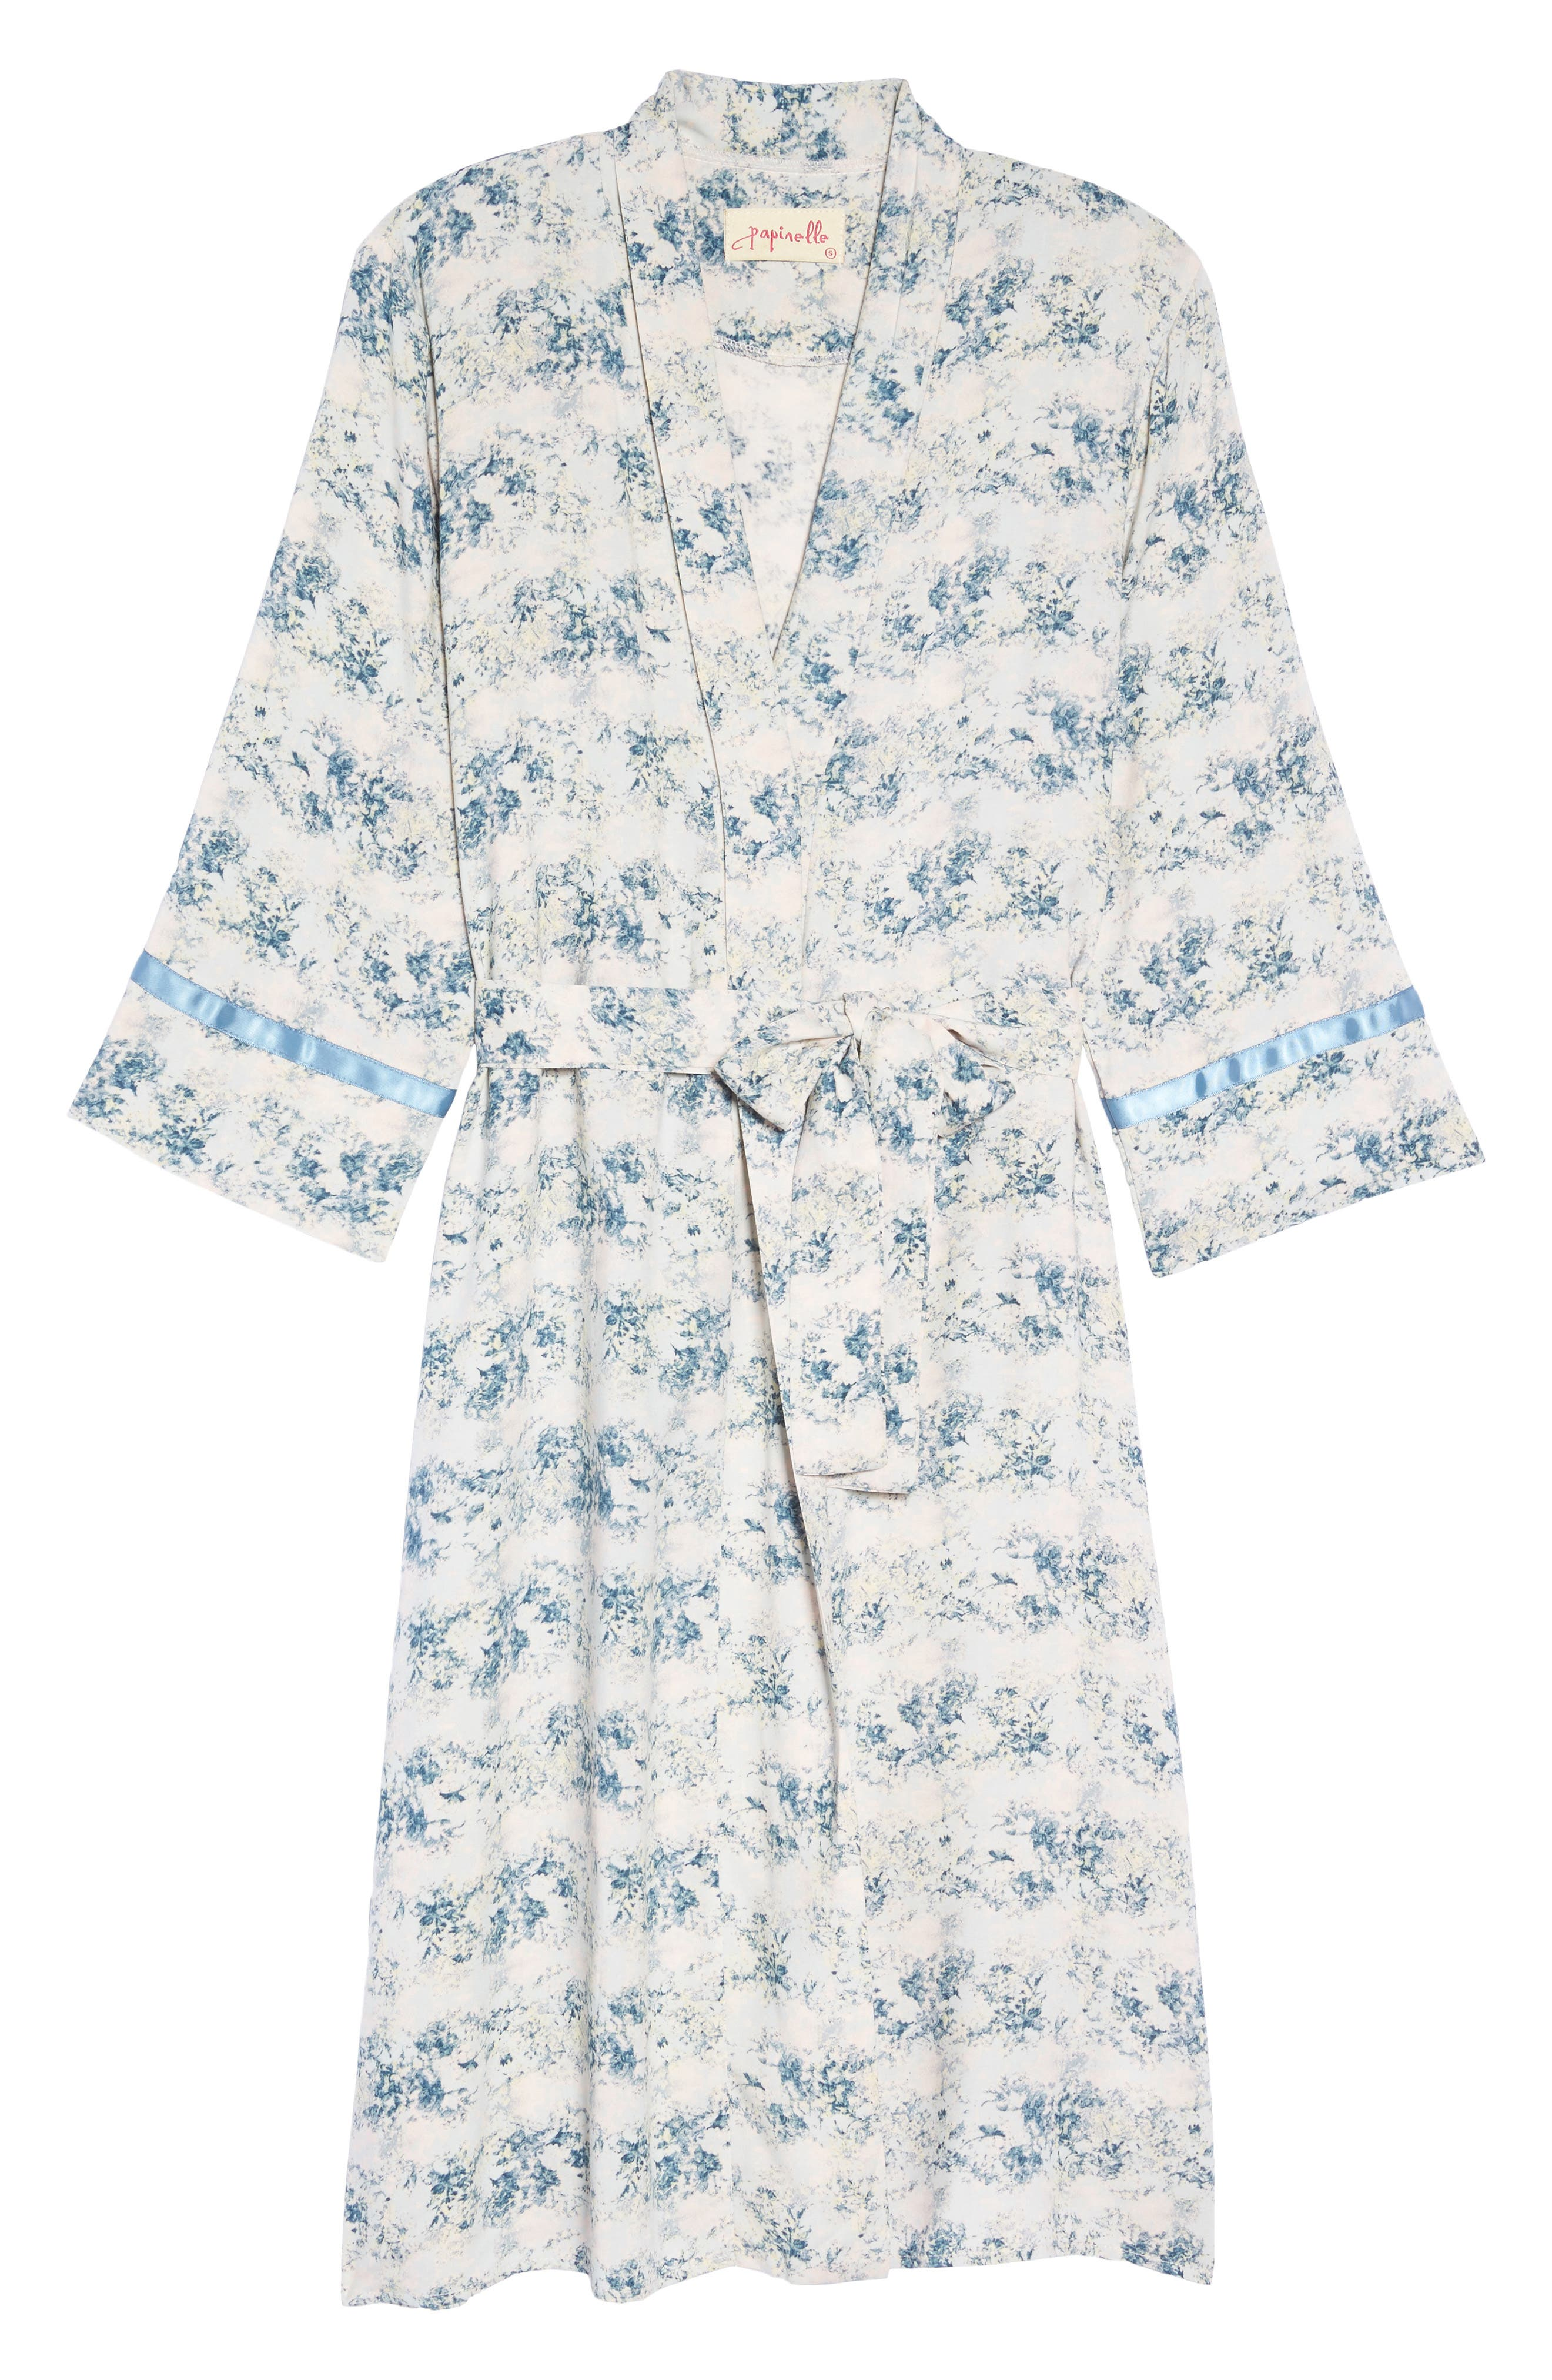 Floral Print Robe,                             Alternate thumbnail 6, color,                             402